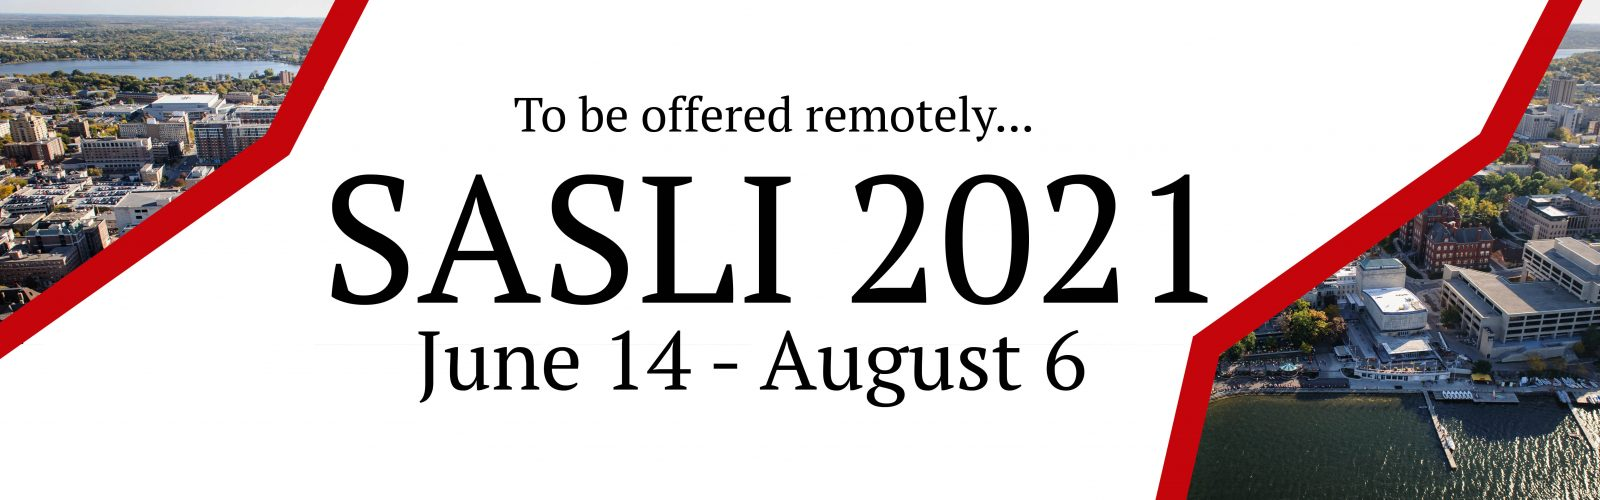 SASLI Dates for 2021 are June 14 - August 6